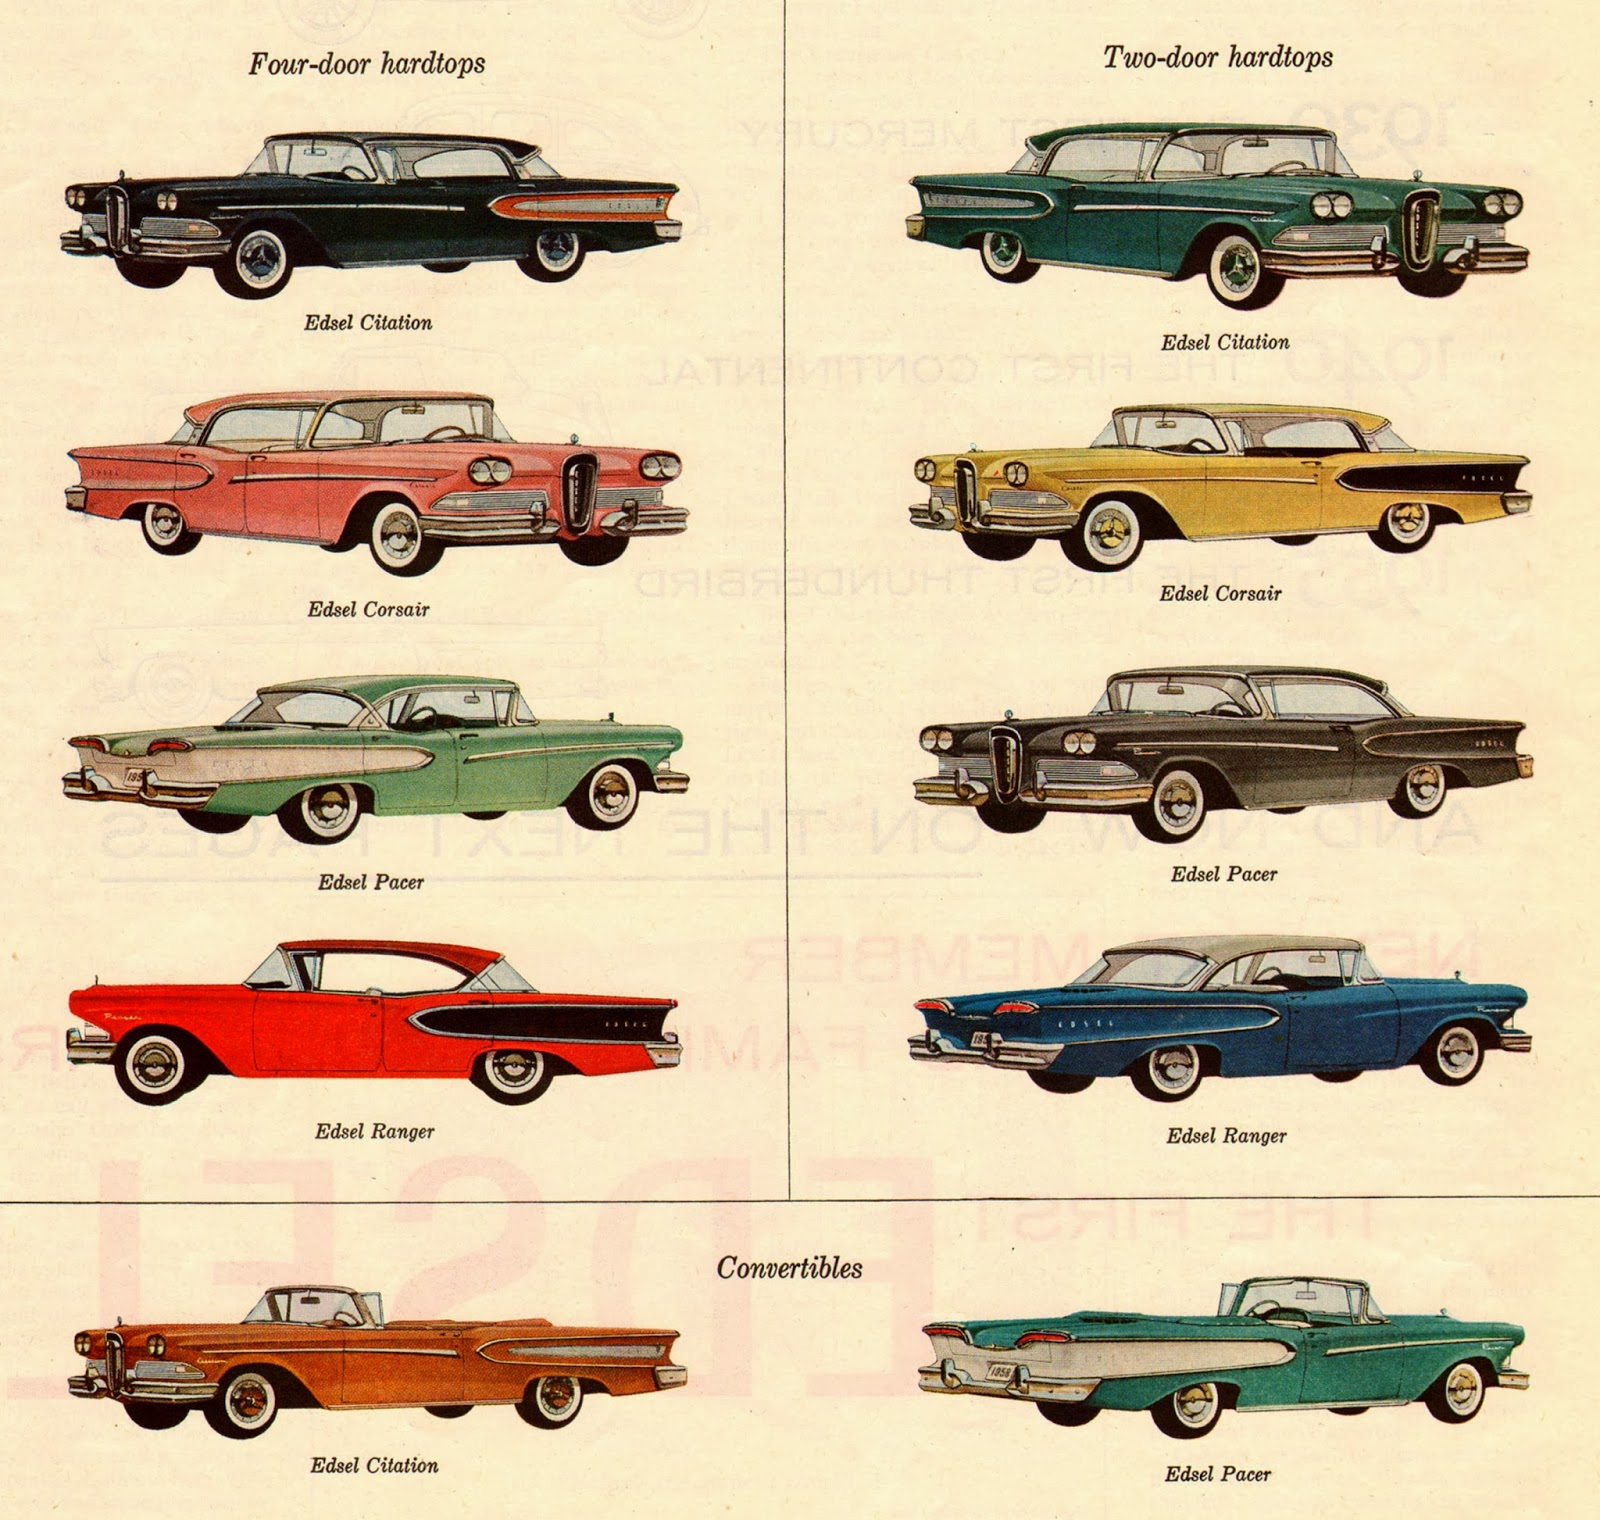 Ford edsel 1958 car models the wrong car at the wrong for Ford motor vehicle models